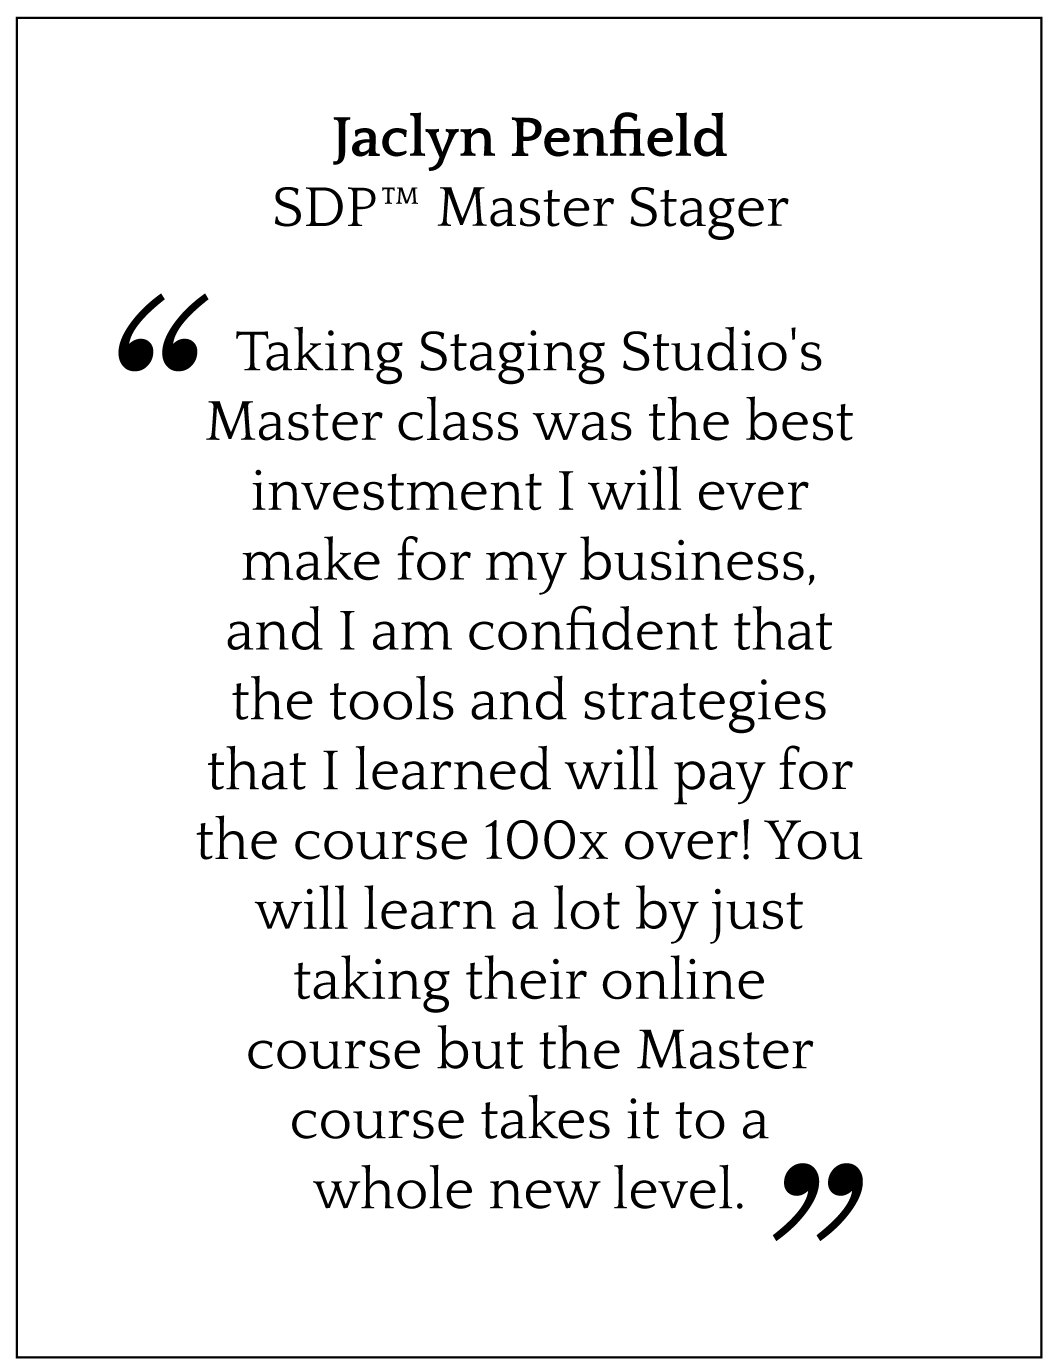 Taking Staging Studio's Master class was the best investment I will ever make for my business, and I am confident that the tools and strategies that I learned will pay for the course 100x over! You will learn a lot by just taking their online course but the Master course takes it to a whole new level.